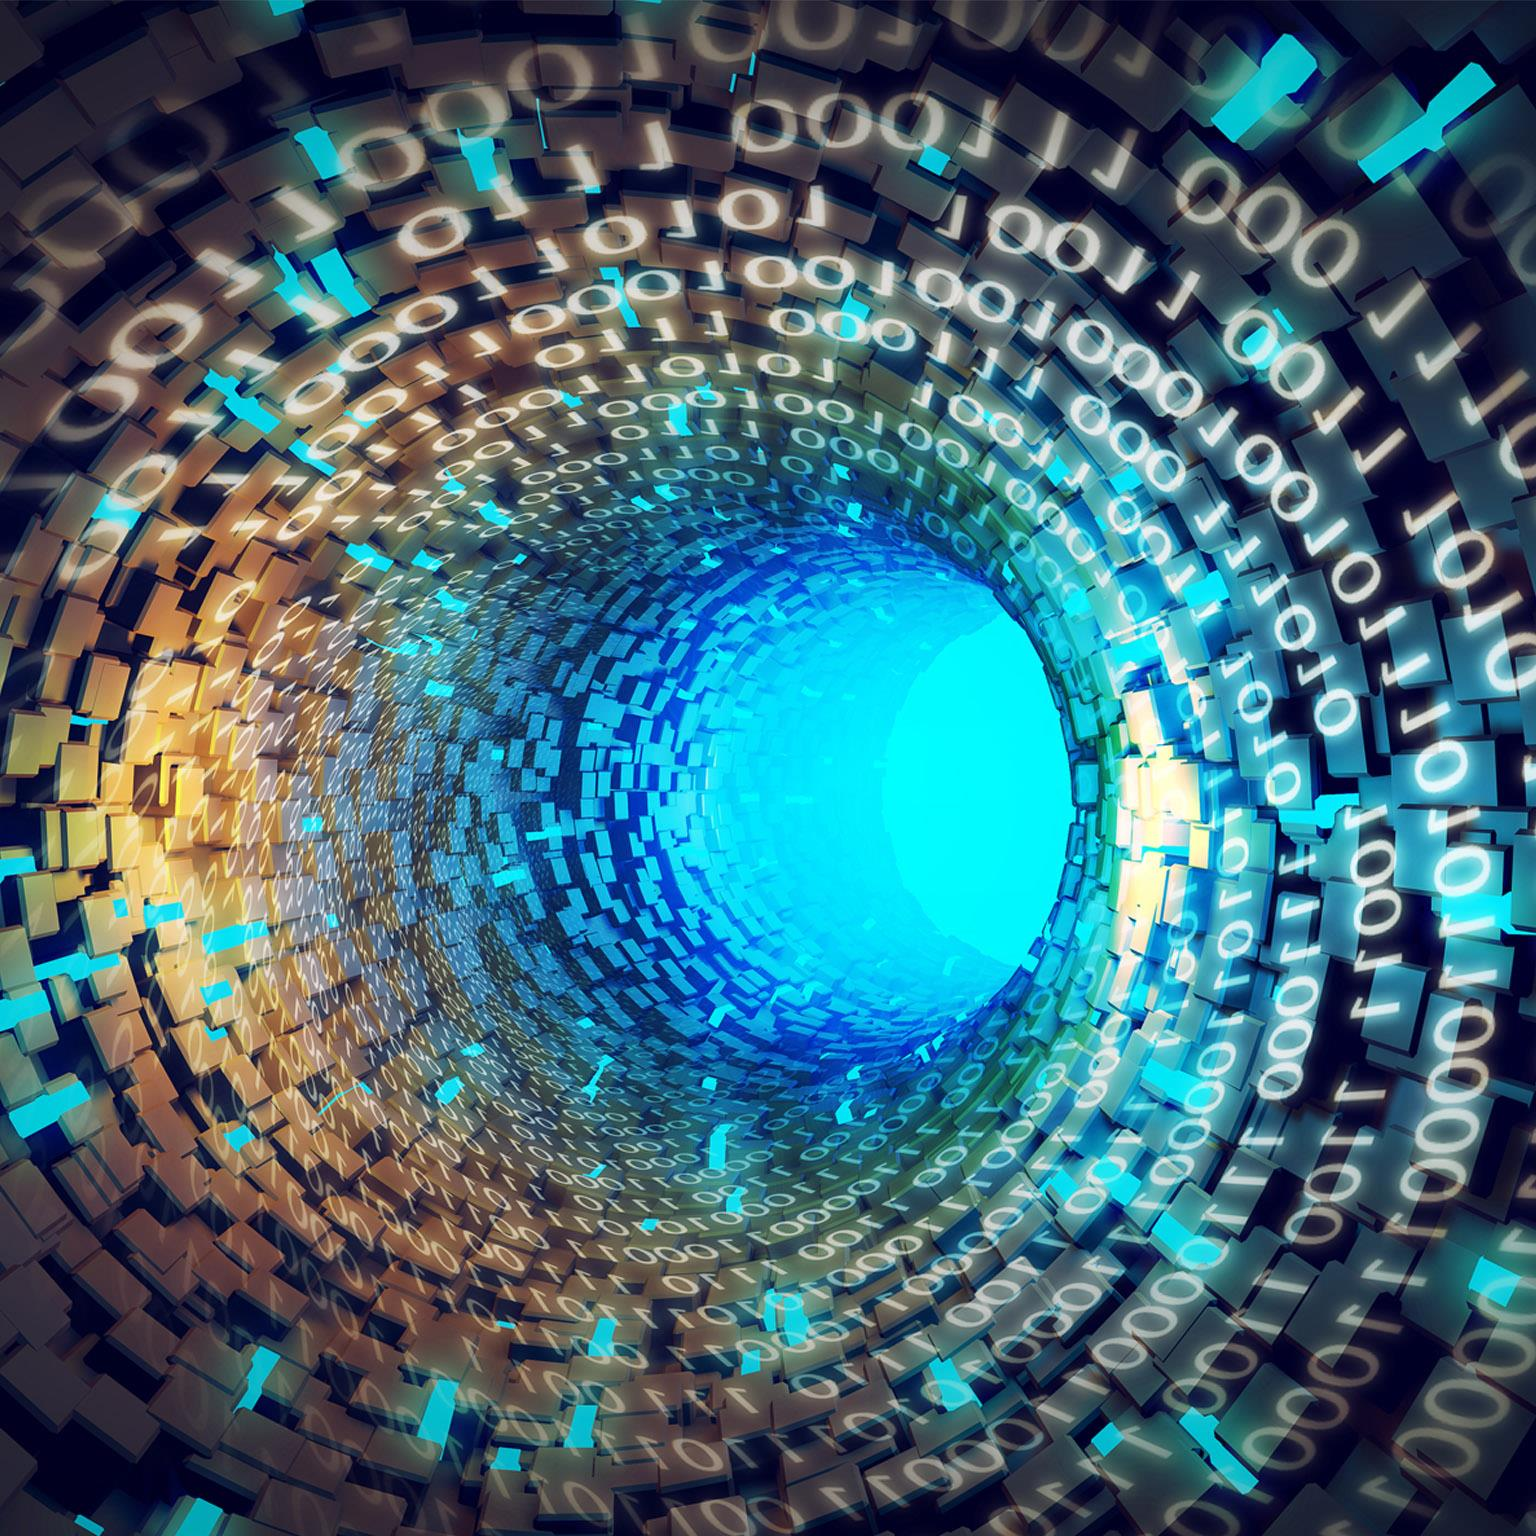 How companies are using big data and analytics | McKinsey